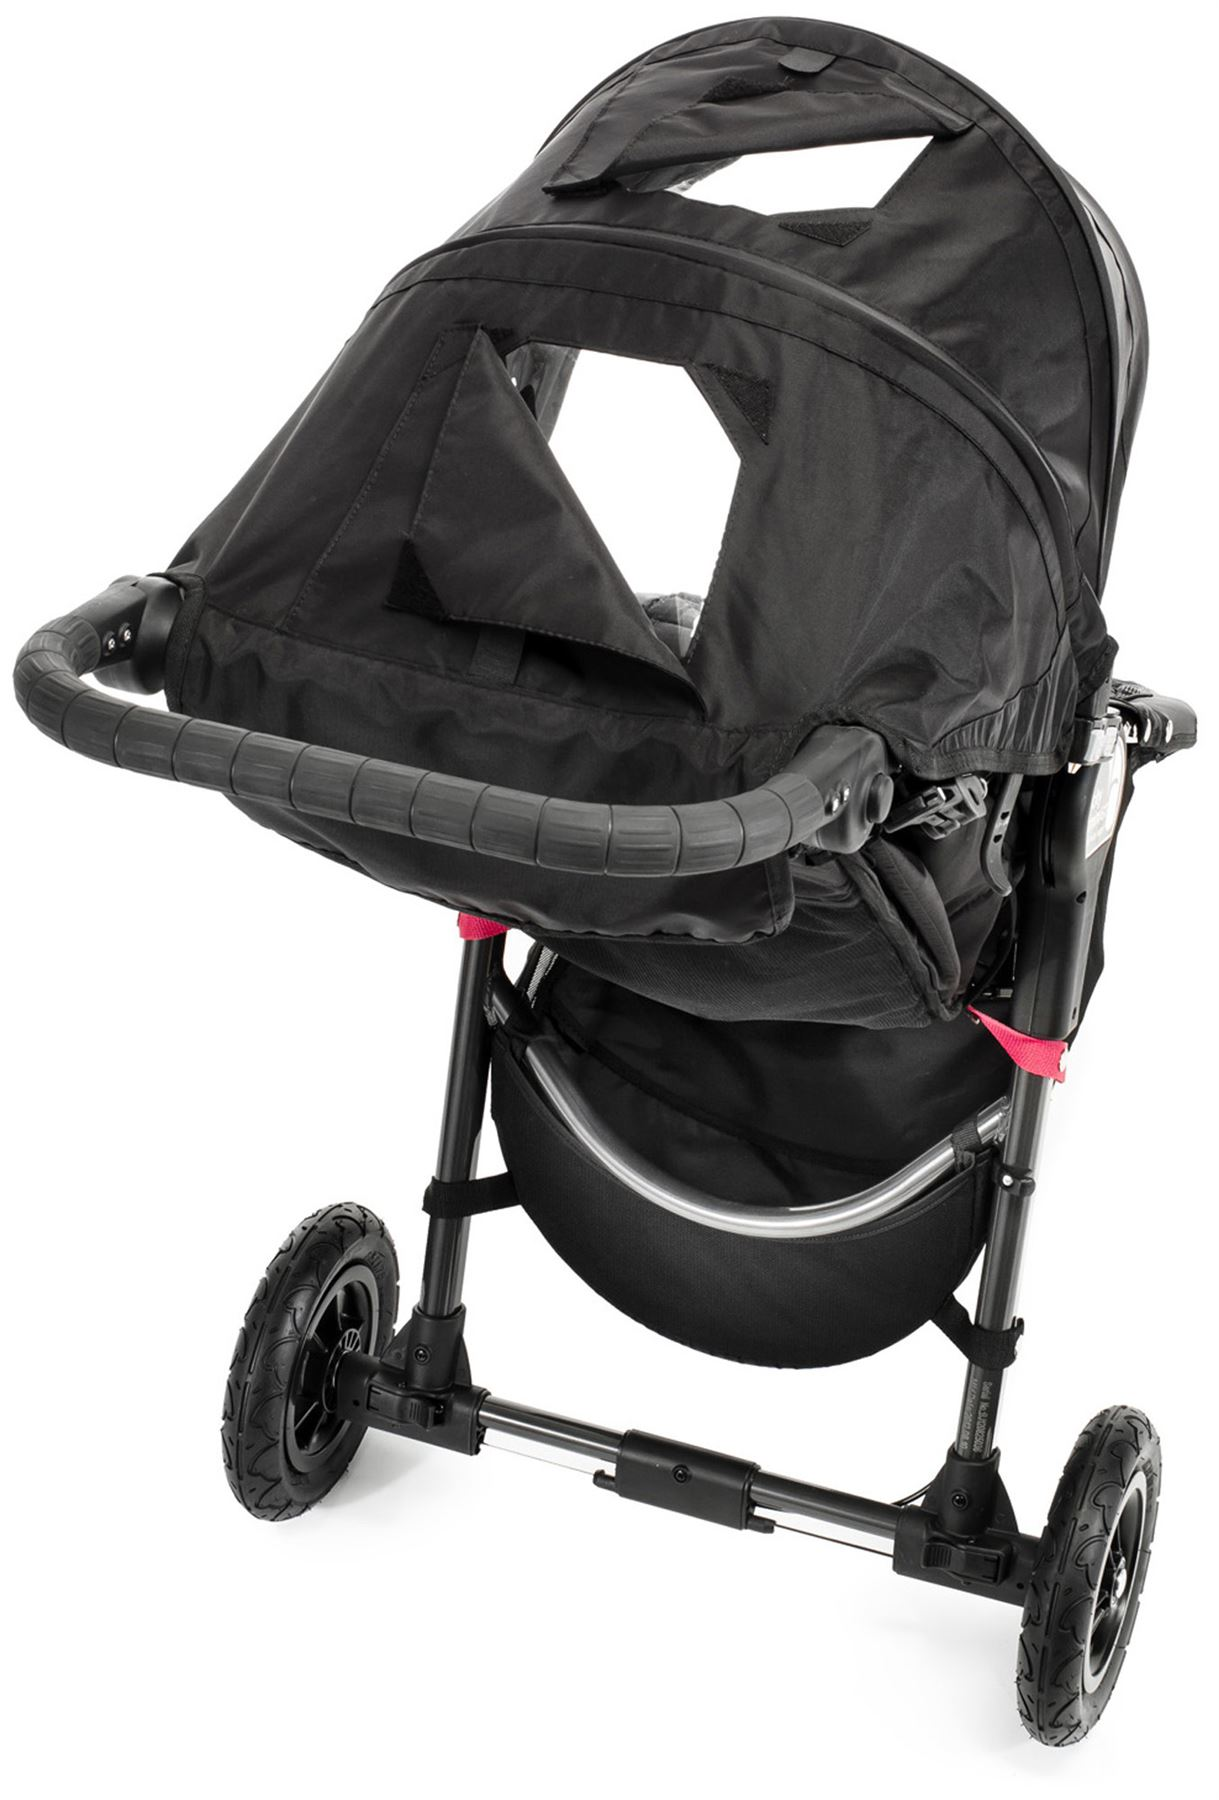 Details About Baby Jogger City Mini Gt Single Stroller Black Pushchair Pram Buggy Bn